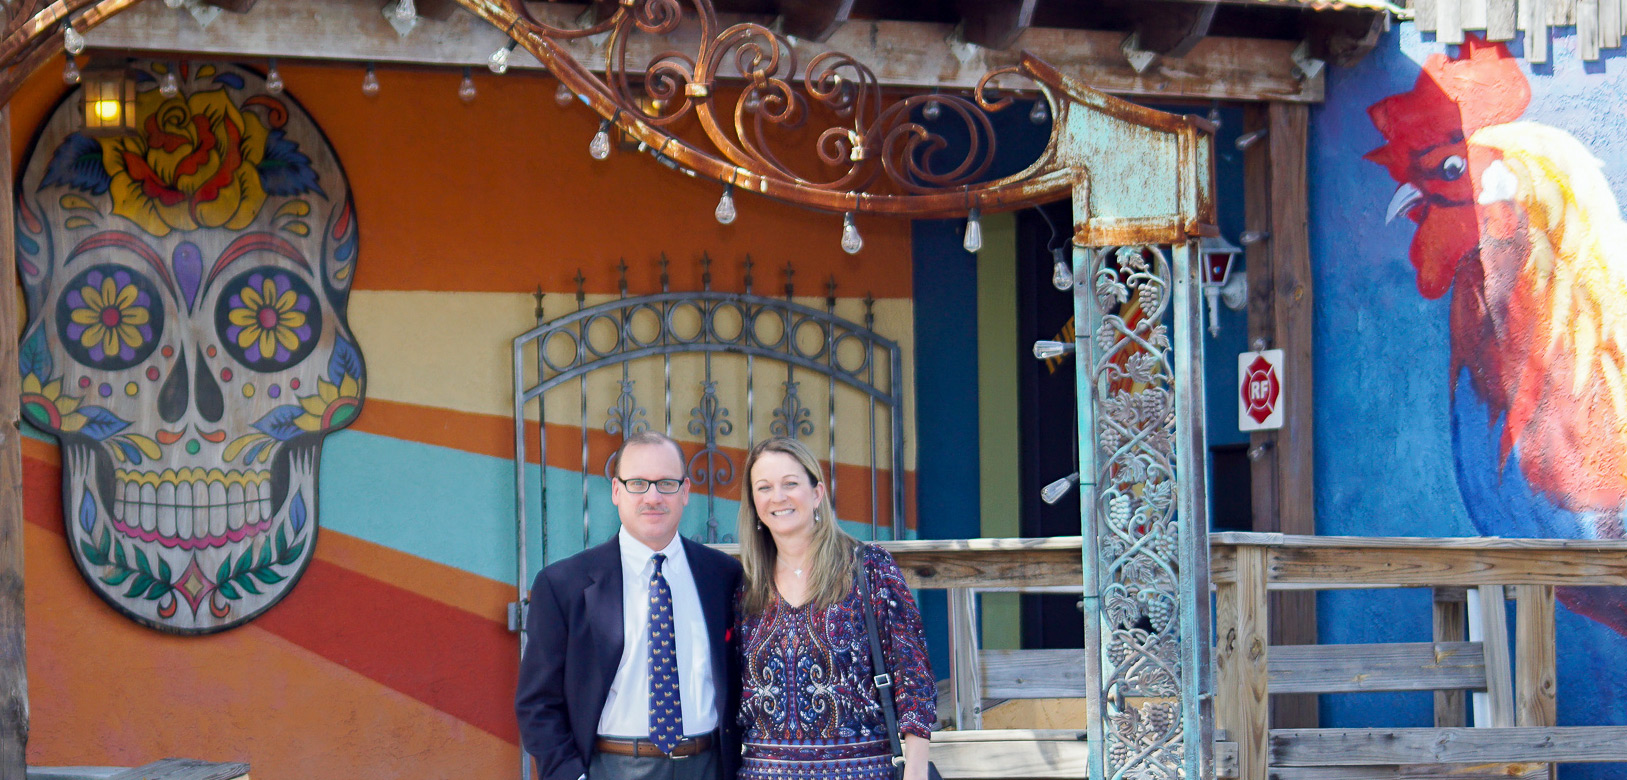 St. Petersburg Foodies Co-Founders Kevin Godbee & Lori Brown